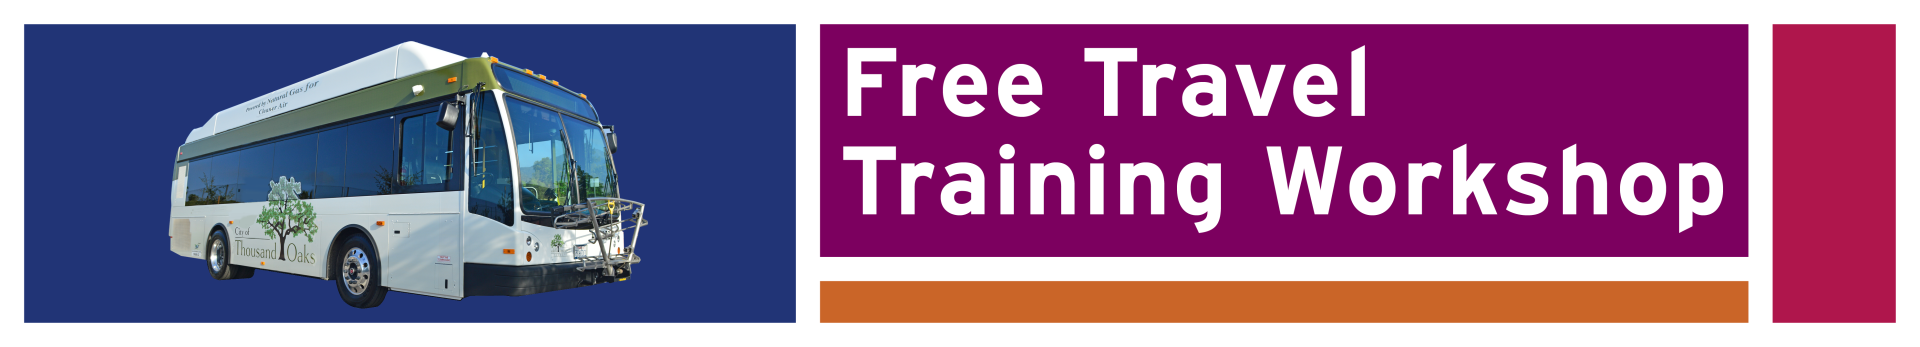 Thousand Oaks Transit Travel Training Workshop Banner Image